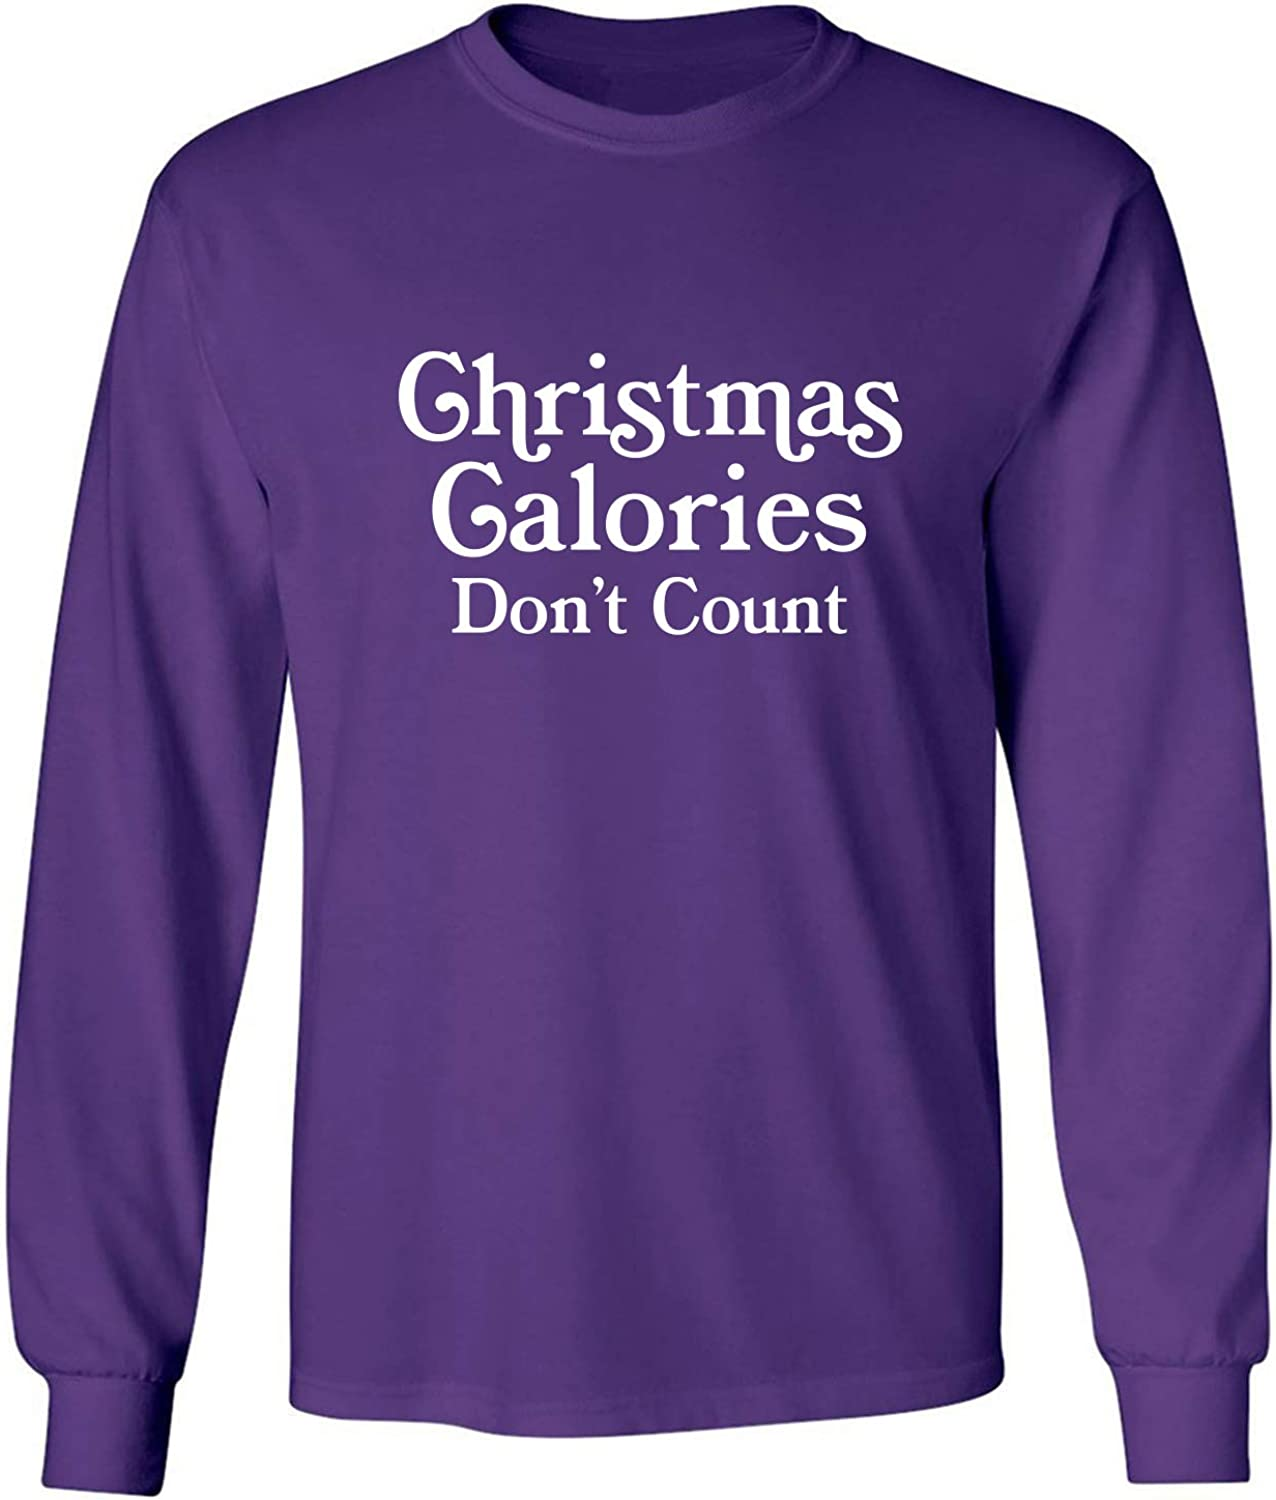 Christmas Calories Don't Count Adult Long Sleeve T-Shirt in Purple - XXX-Large